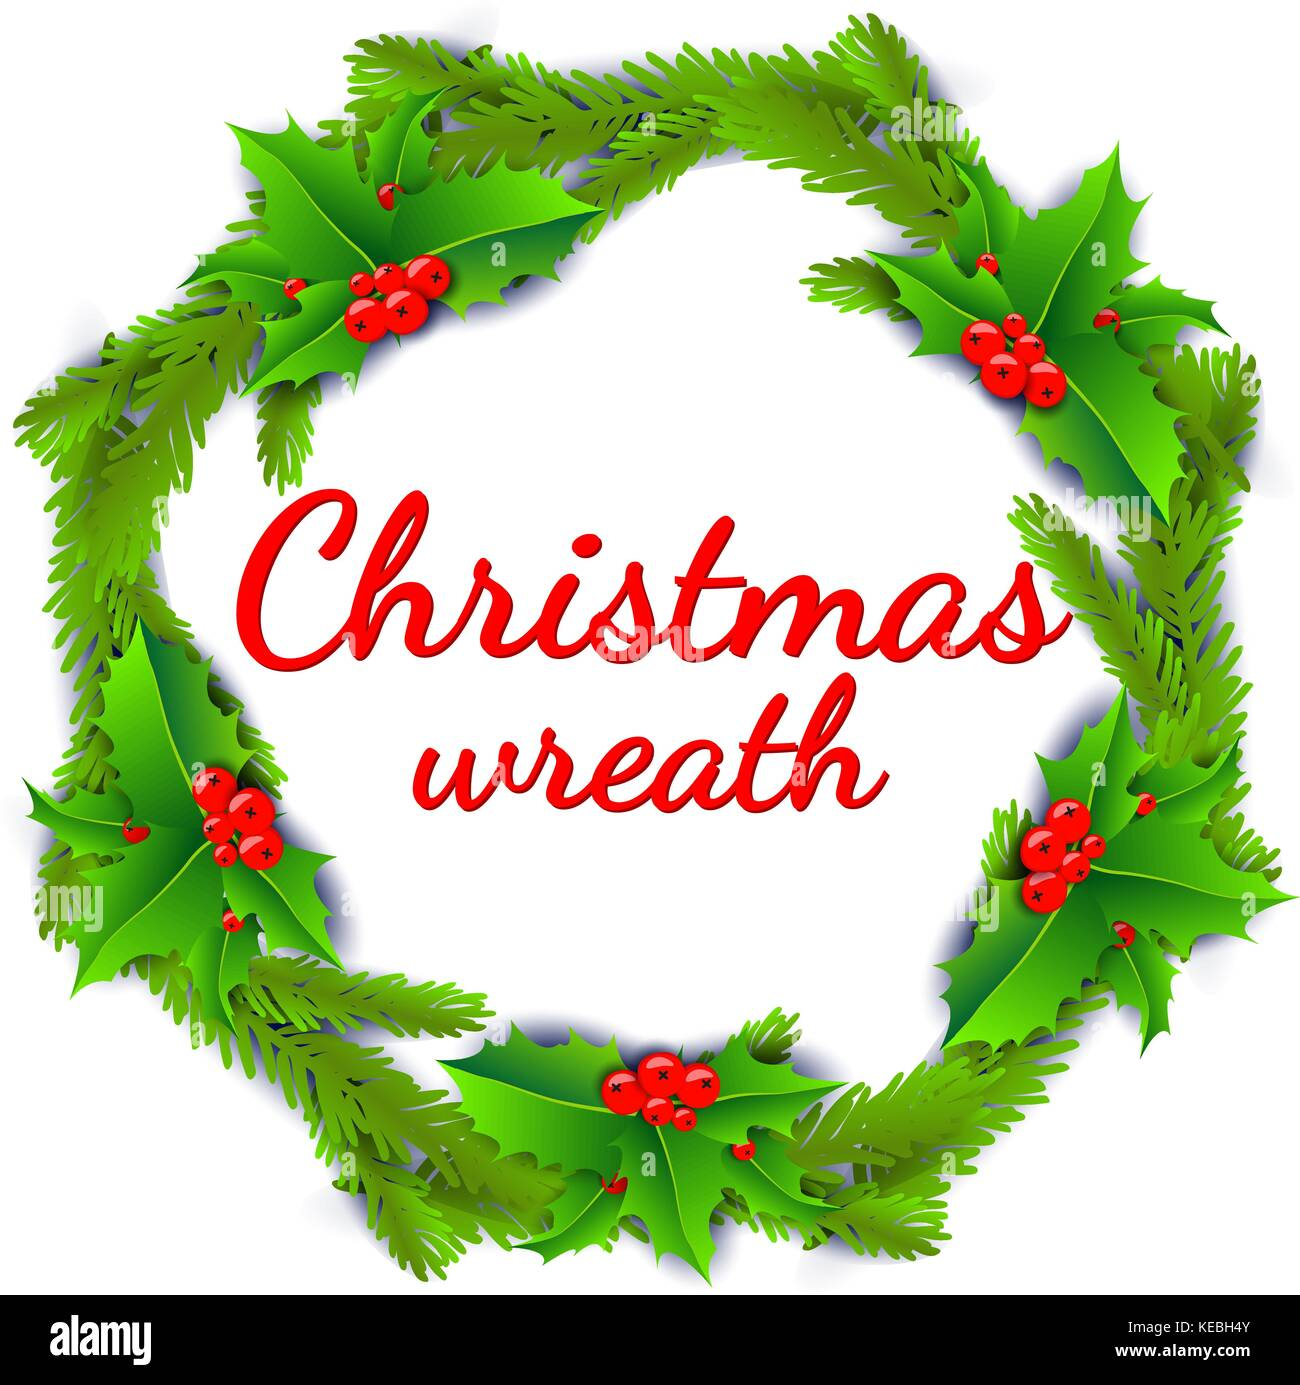 Christmas wreath poster with holly berries and christmas tree branches isolated on white background. - Stock Vector